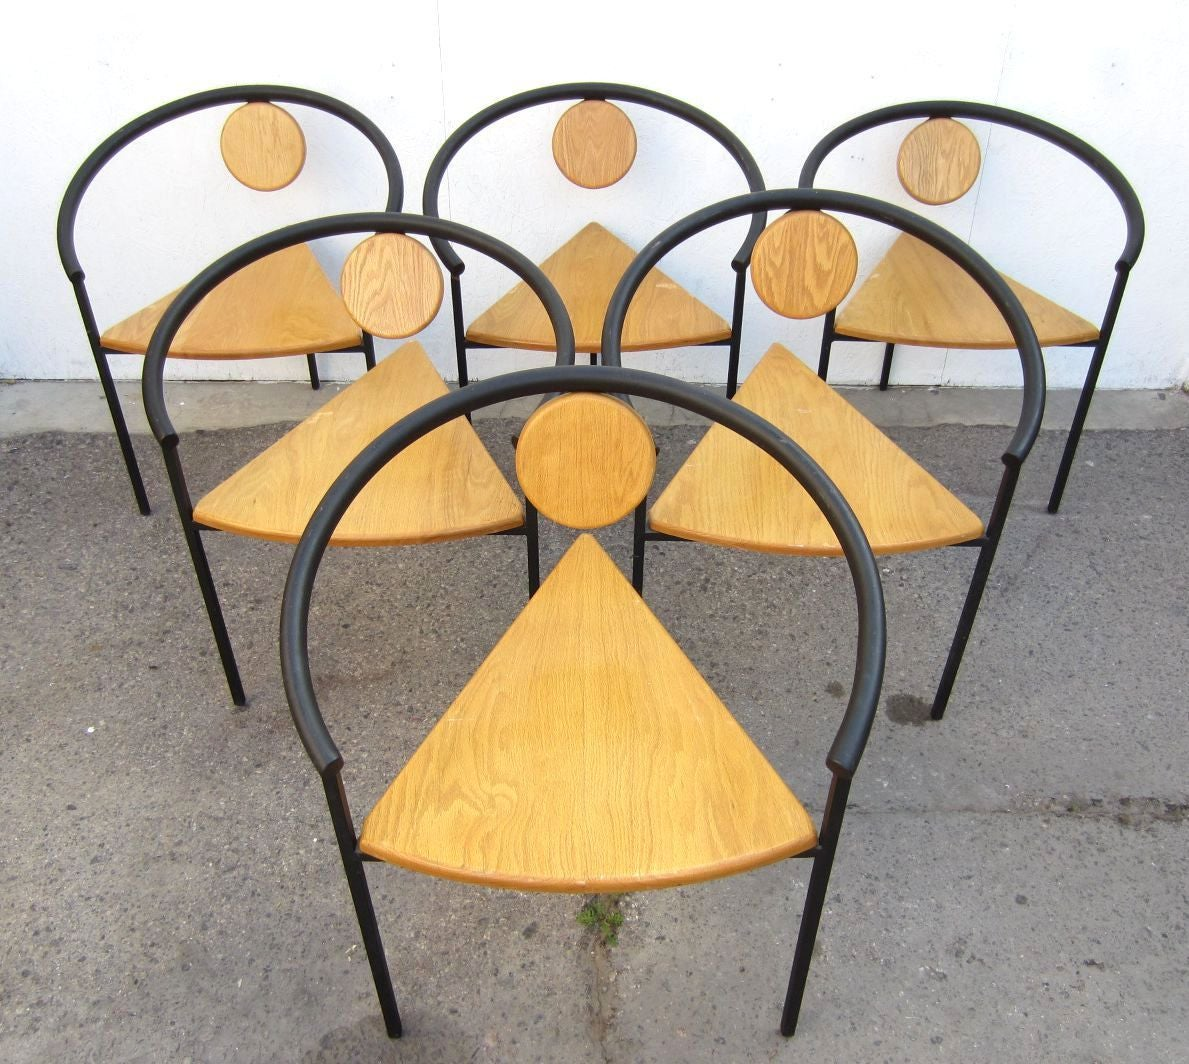 Six memphis post modern dining or arm chairs in the style of michele de lucchi for